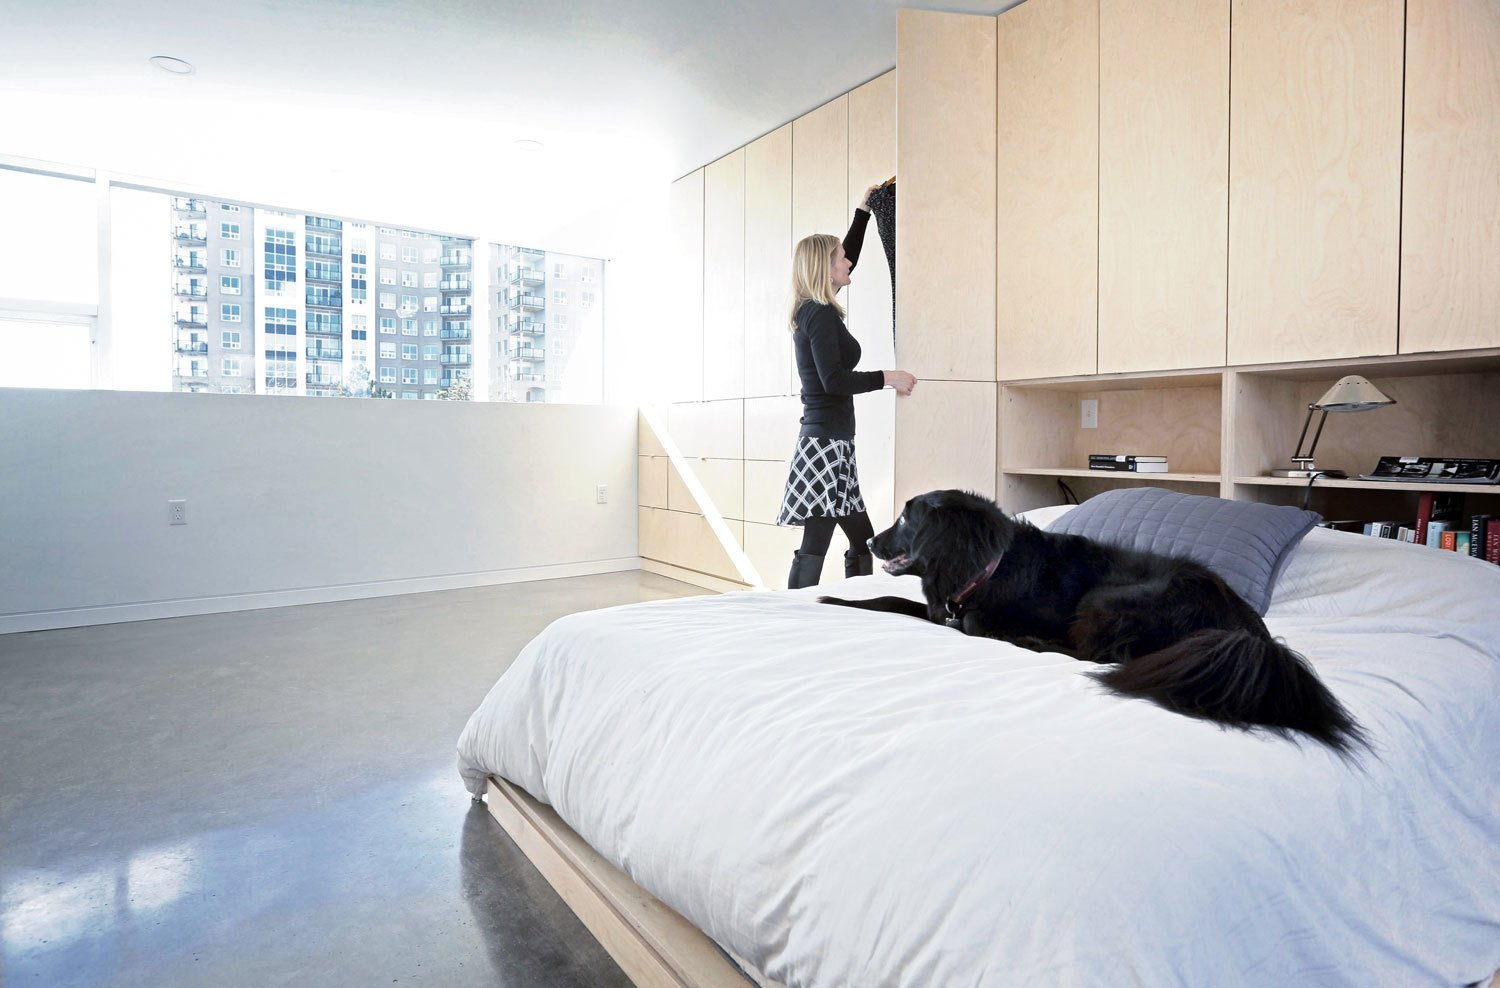 Concrete was chosen for both structural and finish material throughout much of the home, for its aesthetic, functional, and budgetary appeal. The polished concrete floors in the bedroom complement the birch bed and cabinetry. The home provides living space for the couple, two kids, one dog, and two cats. Tagged: Bedroom, Bed, Storage, Shelves, Concrete Floor, Recessed Lighting, Ceiling Lighting, and Table Lighting.  Photo 7 of 9 in The Architect Next Door